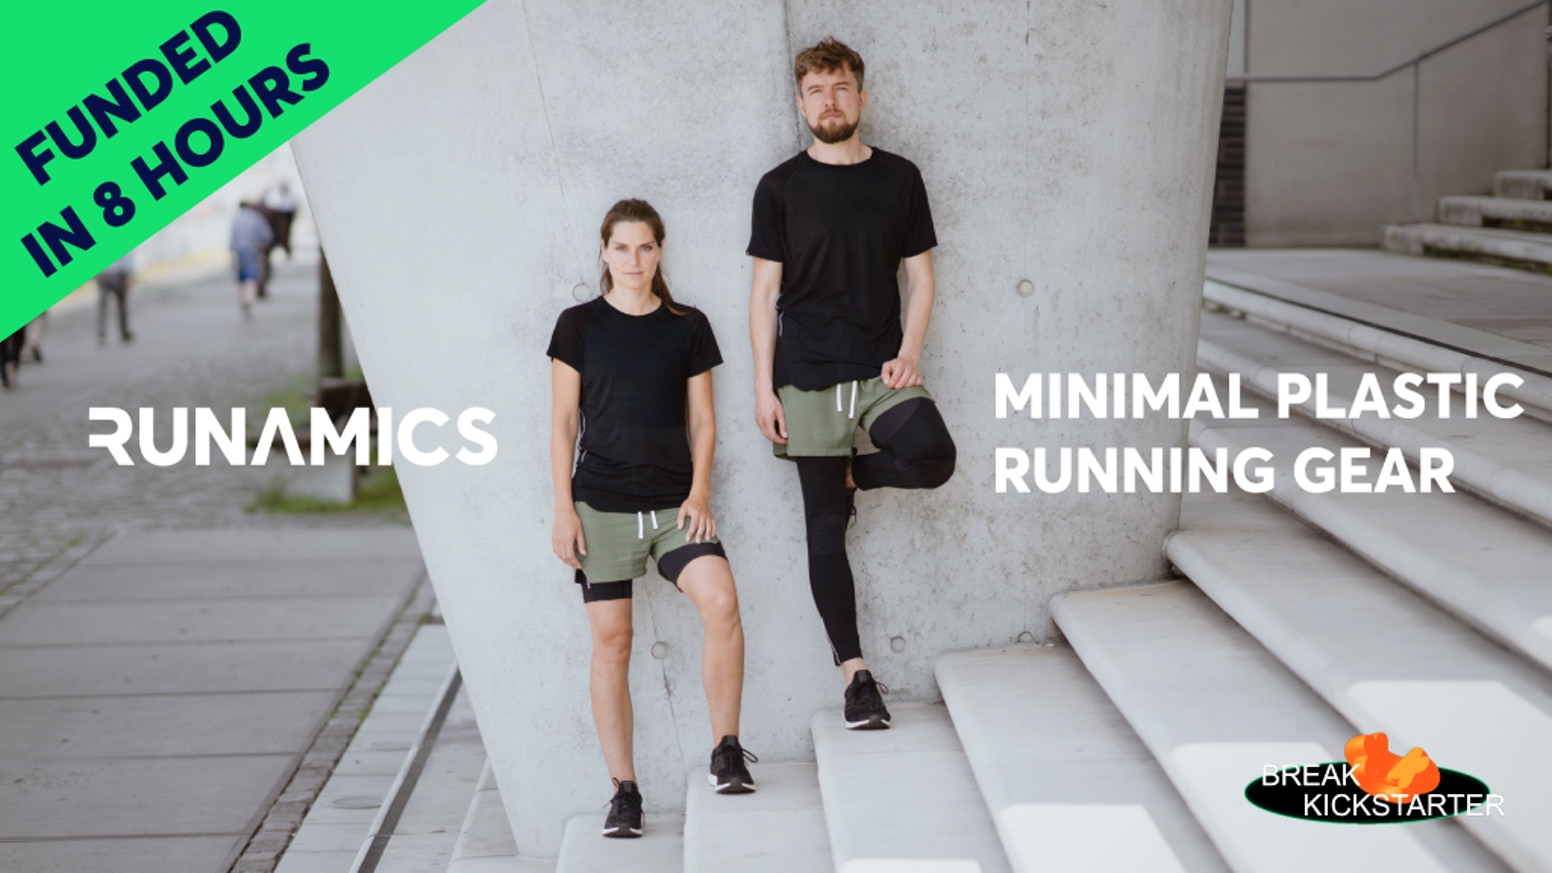 Functional and kick-ass looking alternative to plastic running gear. Let's fight the microplastics epidemic together.